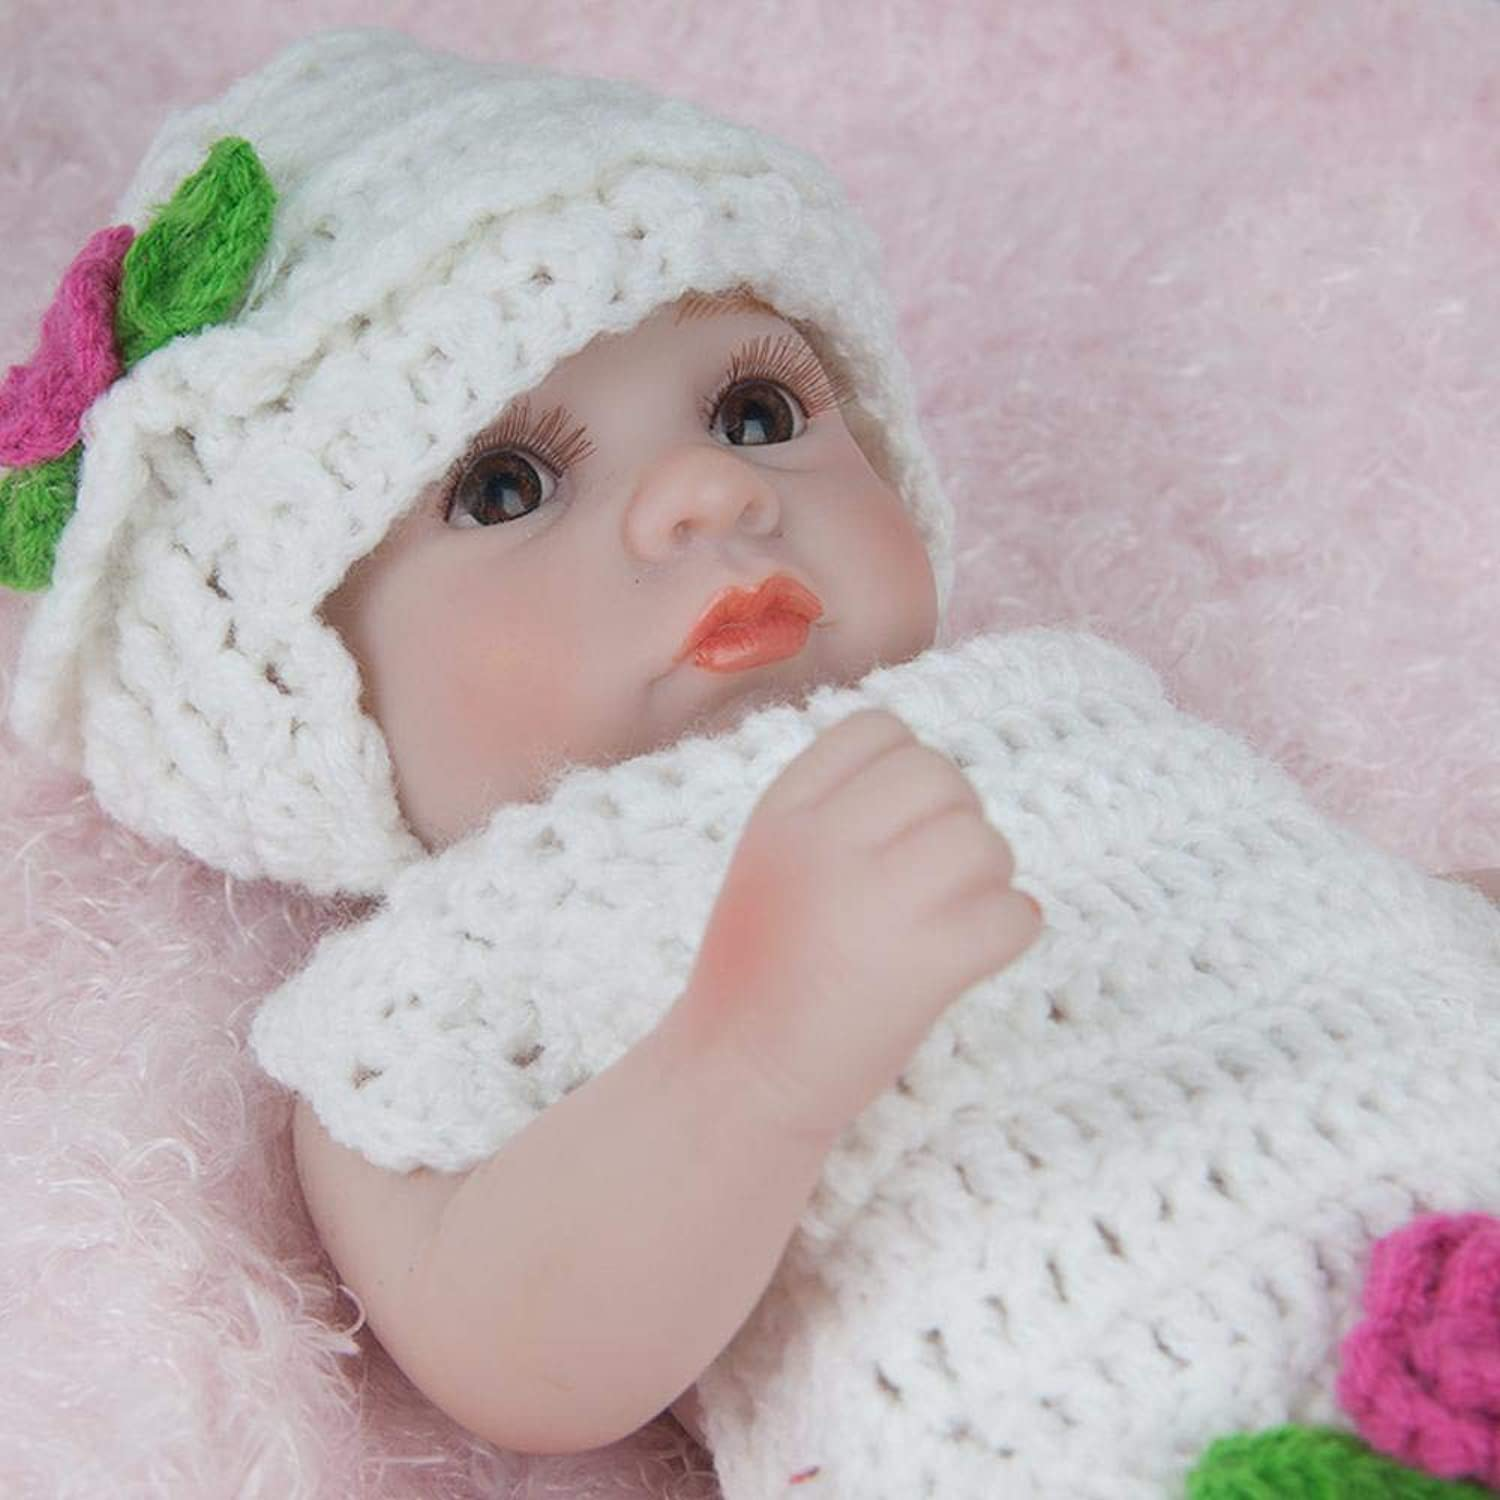 Hongge Reborn Baby Doll,Lifelike Rebirth Doll Looks Real Baby Doll Toy Gift 28cm